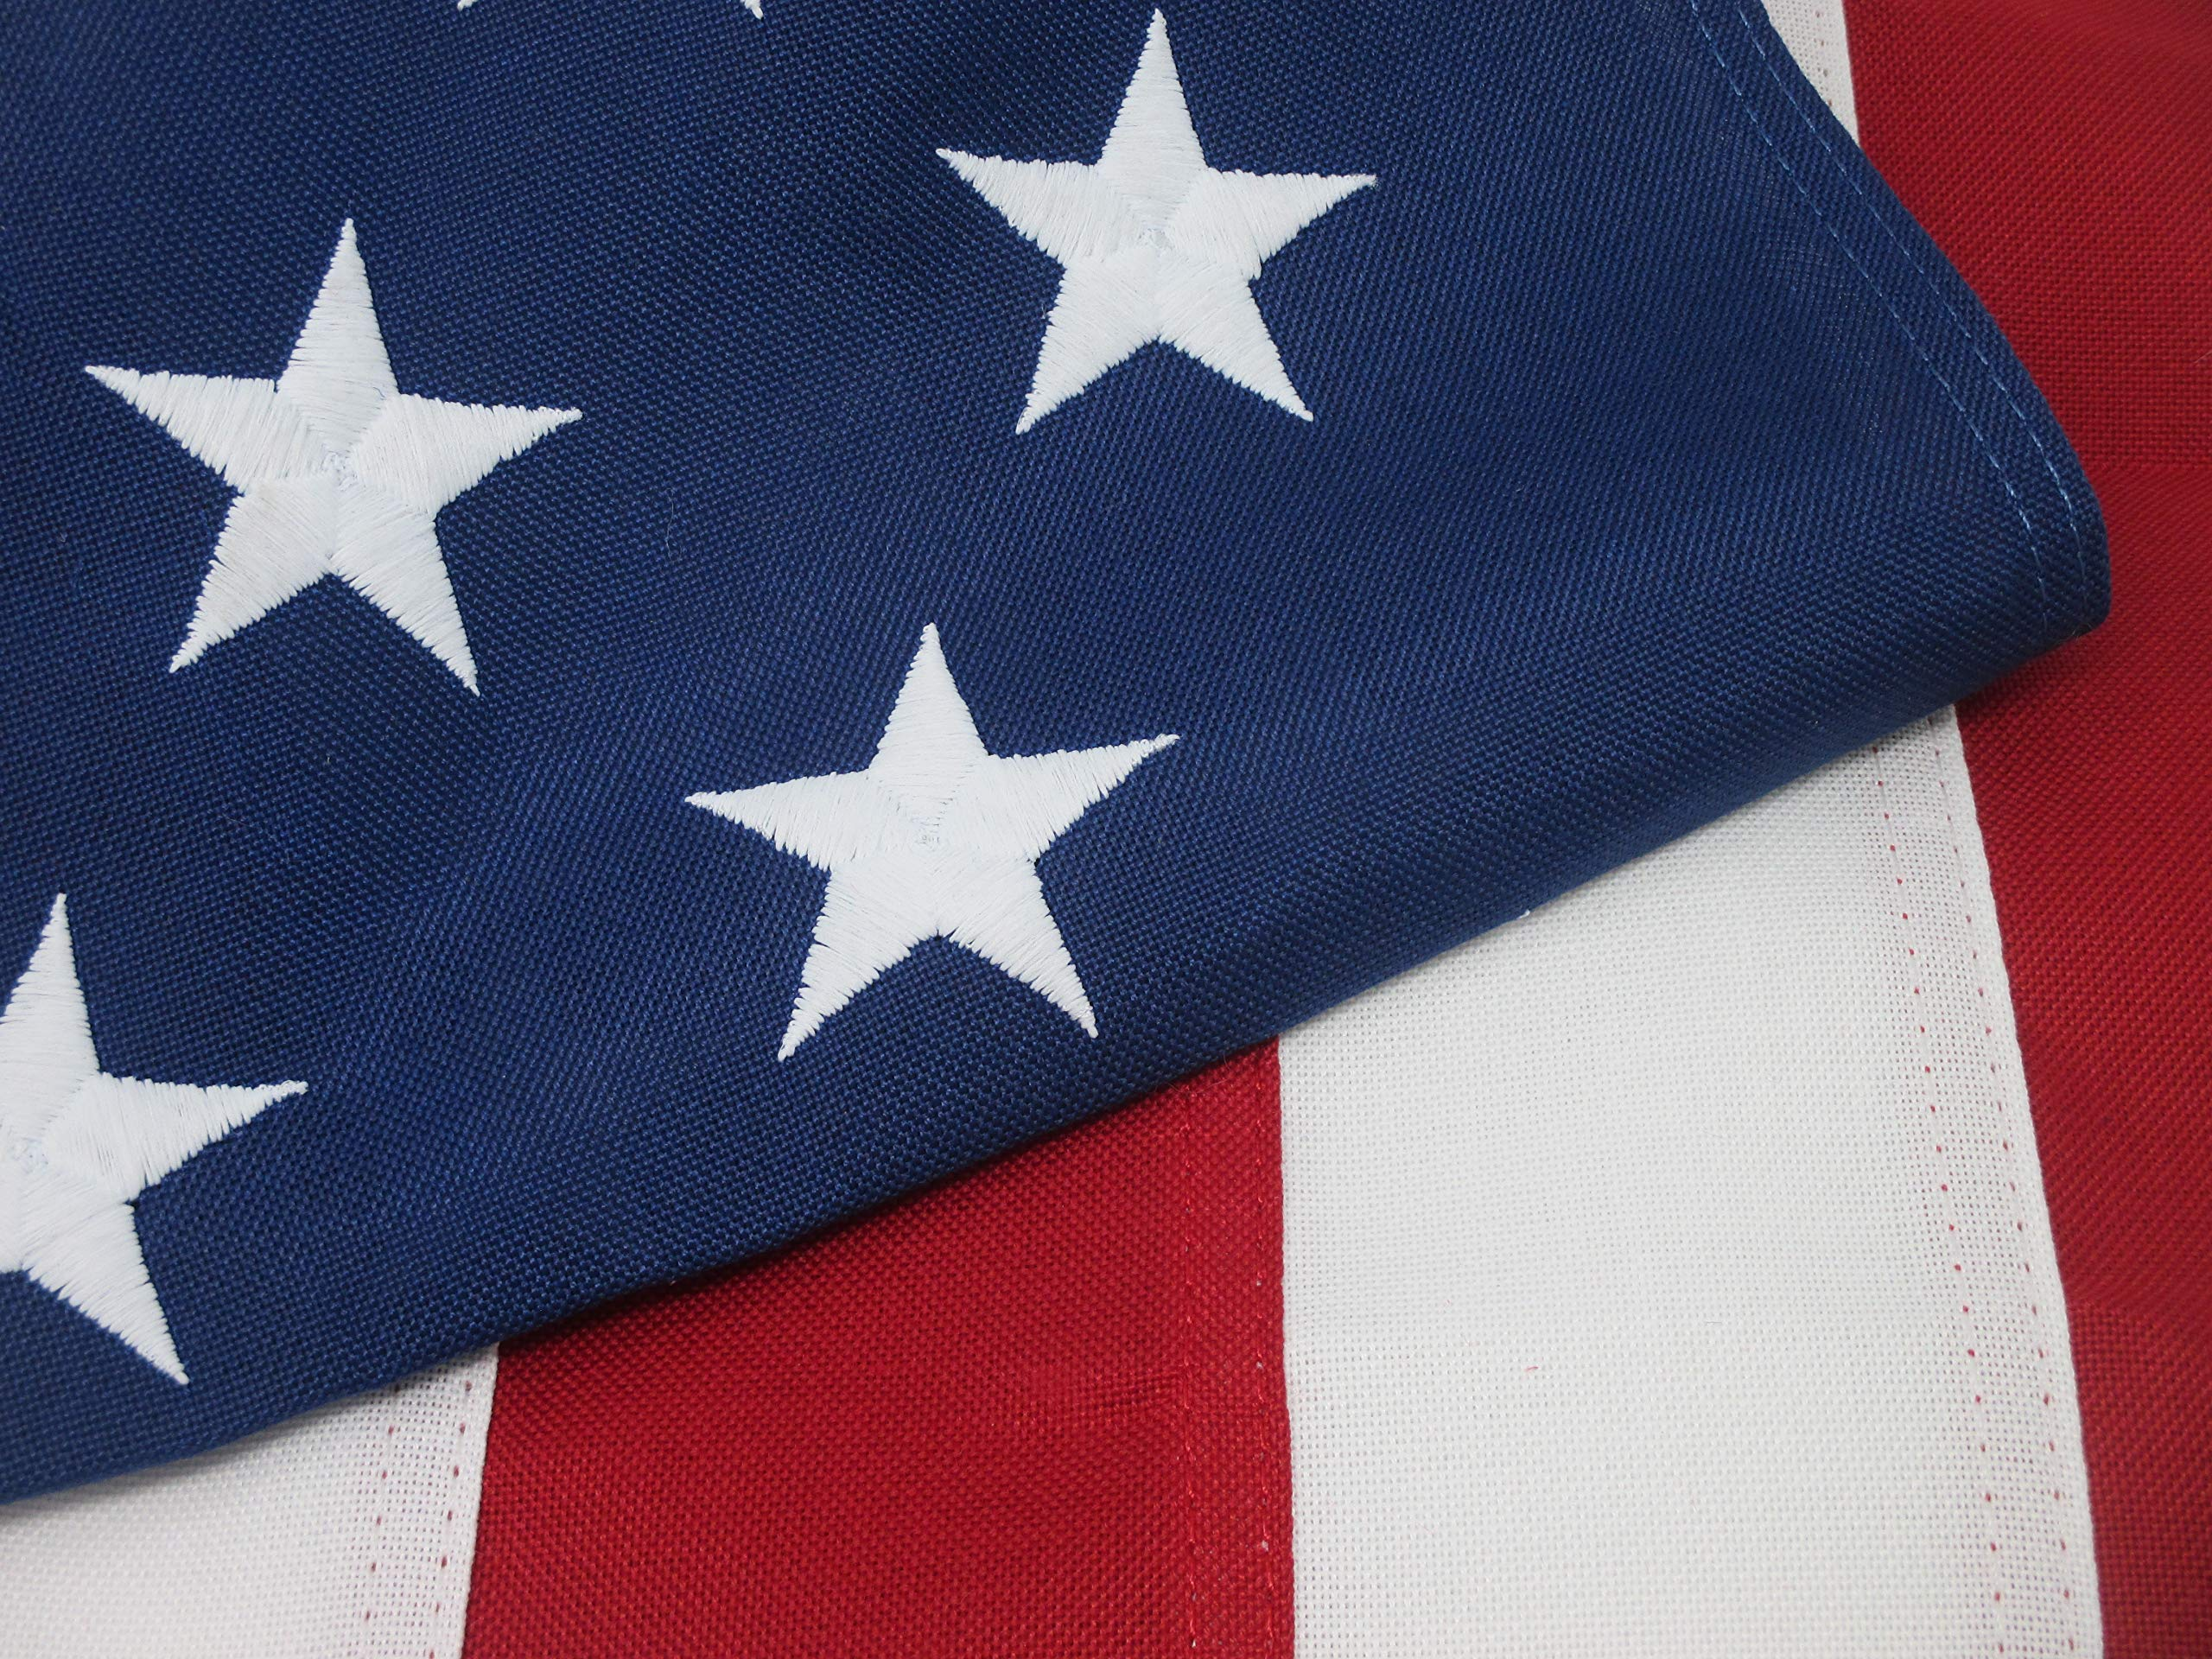 American Flag 3x5 Heavy Duty Premium Commercial Grade 2-Ply PolyMax Polyester The Best US Flag 100% Made in USA Tough Durable Fade Resistant All Weather Sewn Stripes Embroidered Stars Brass Grommets by Made in USA Flags